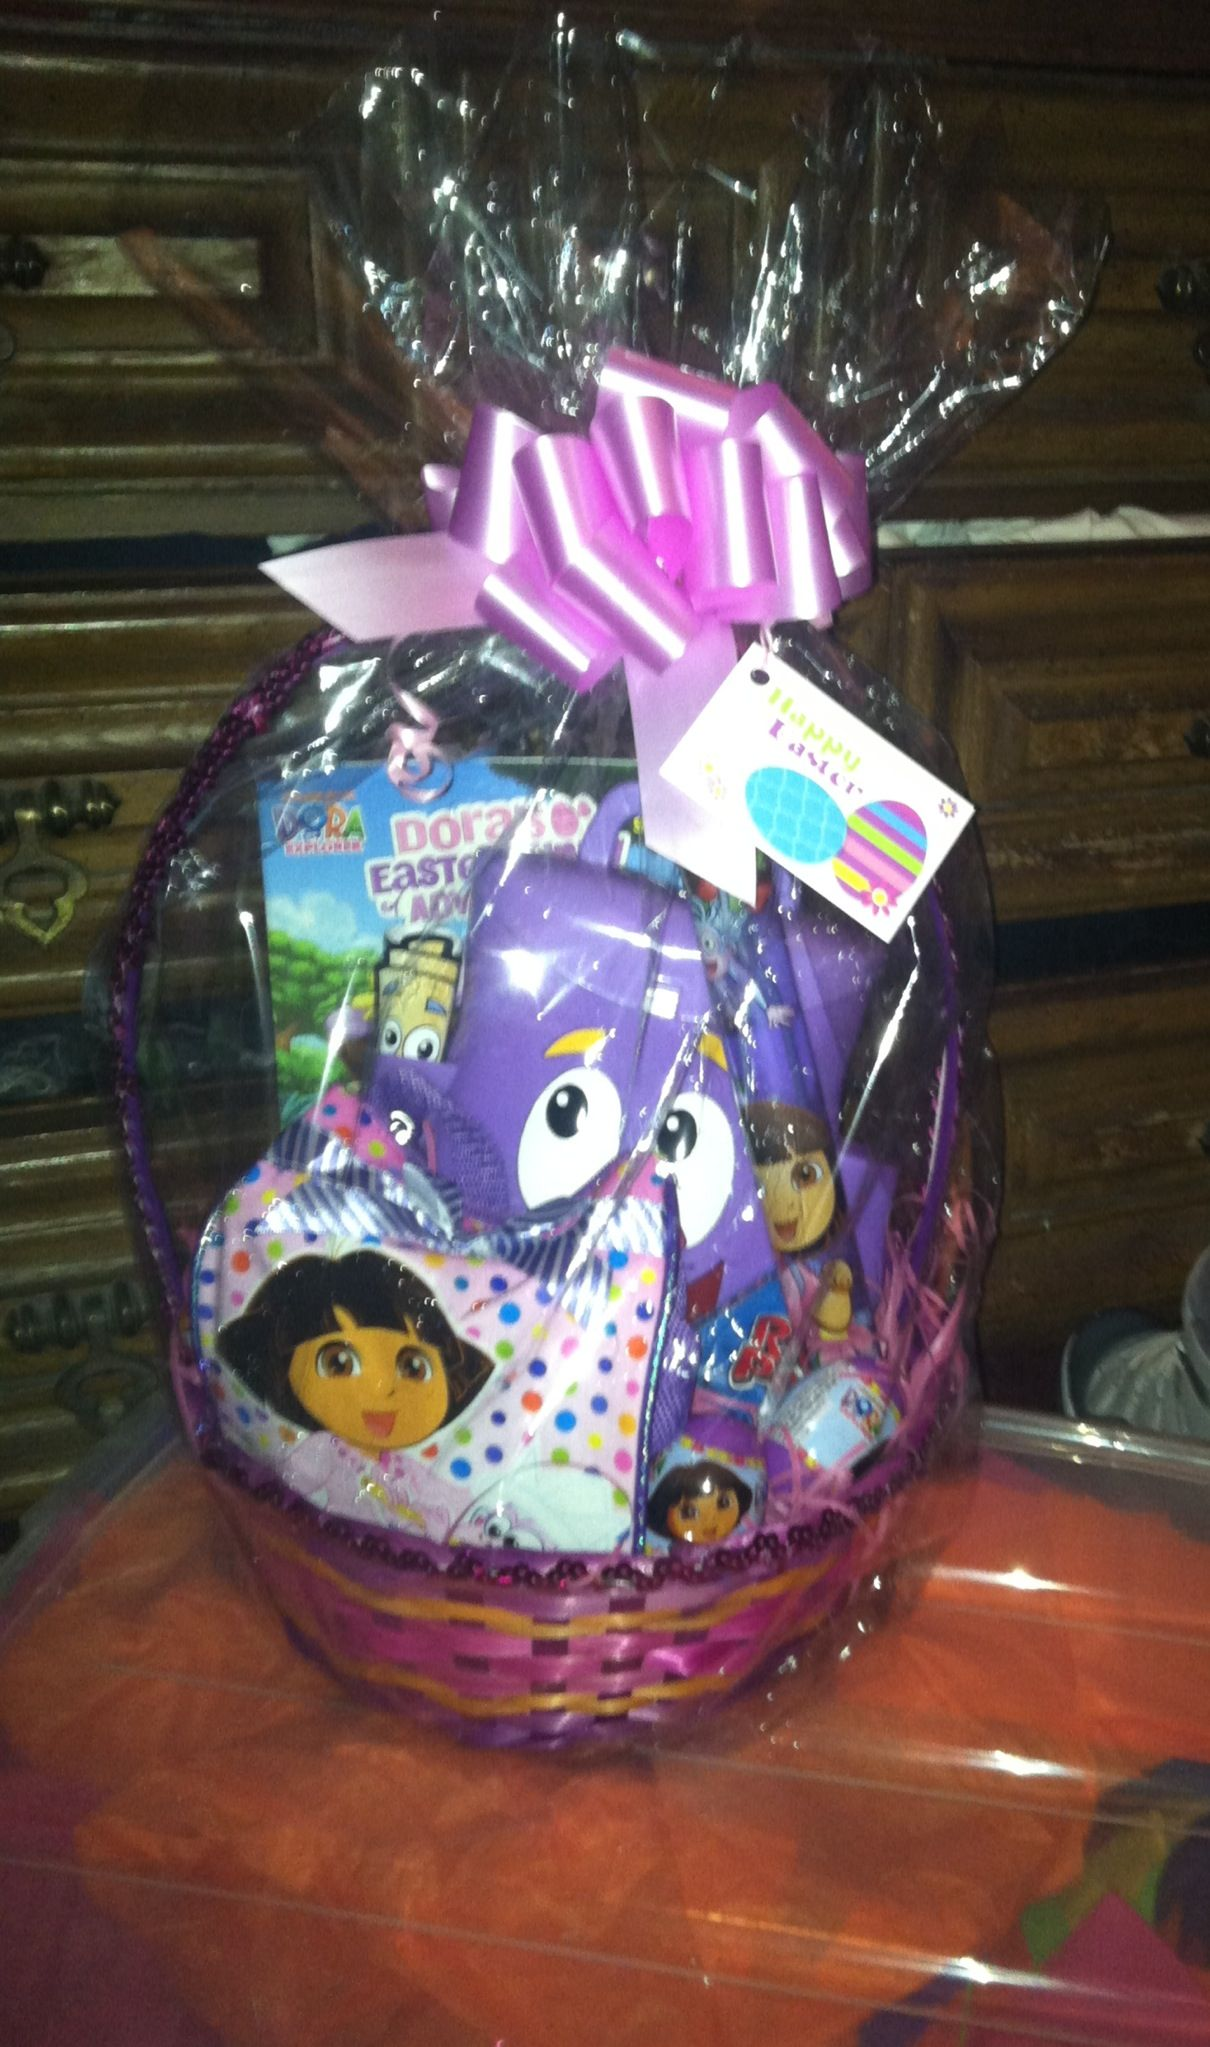 Diy dora the explorer easter basket i made for my daughter diy dora the explorer easter basket i made for my daughter negle Image collections